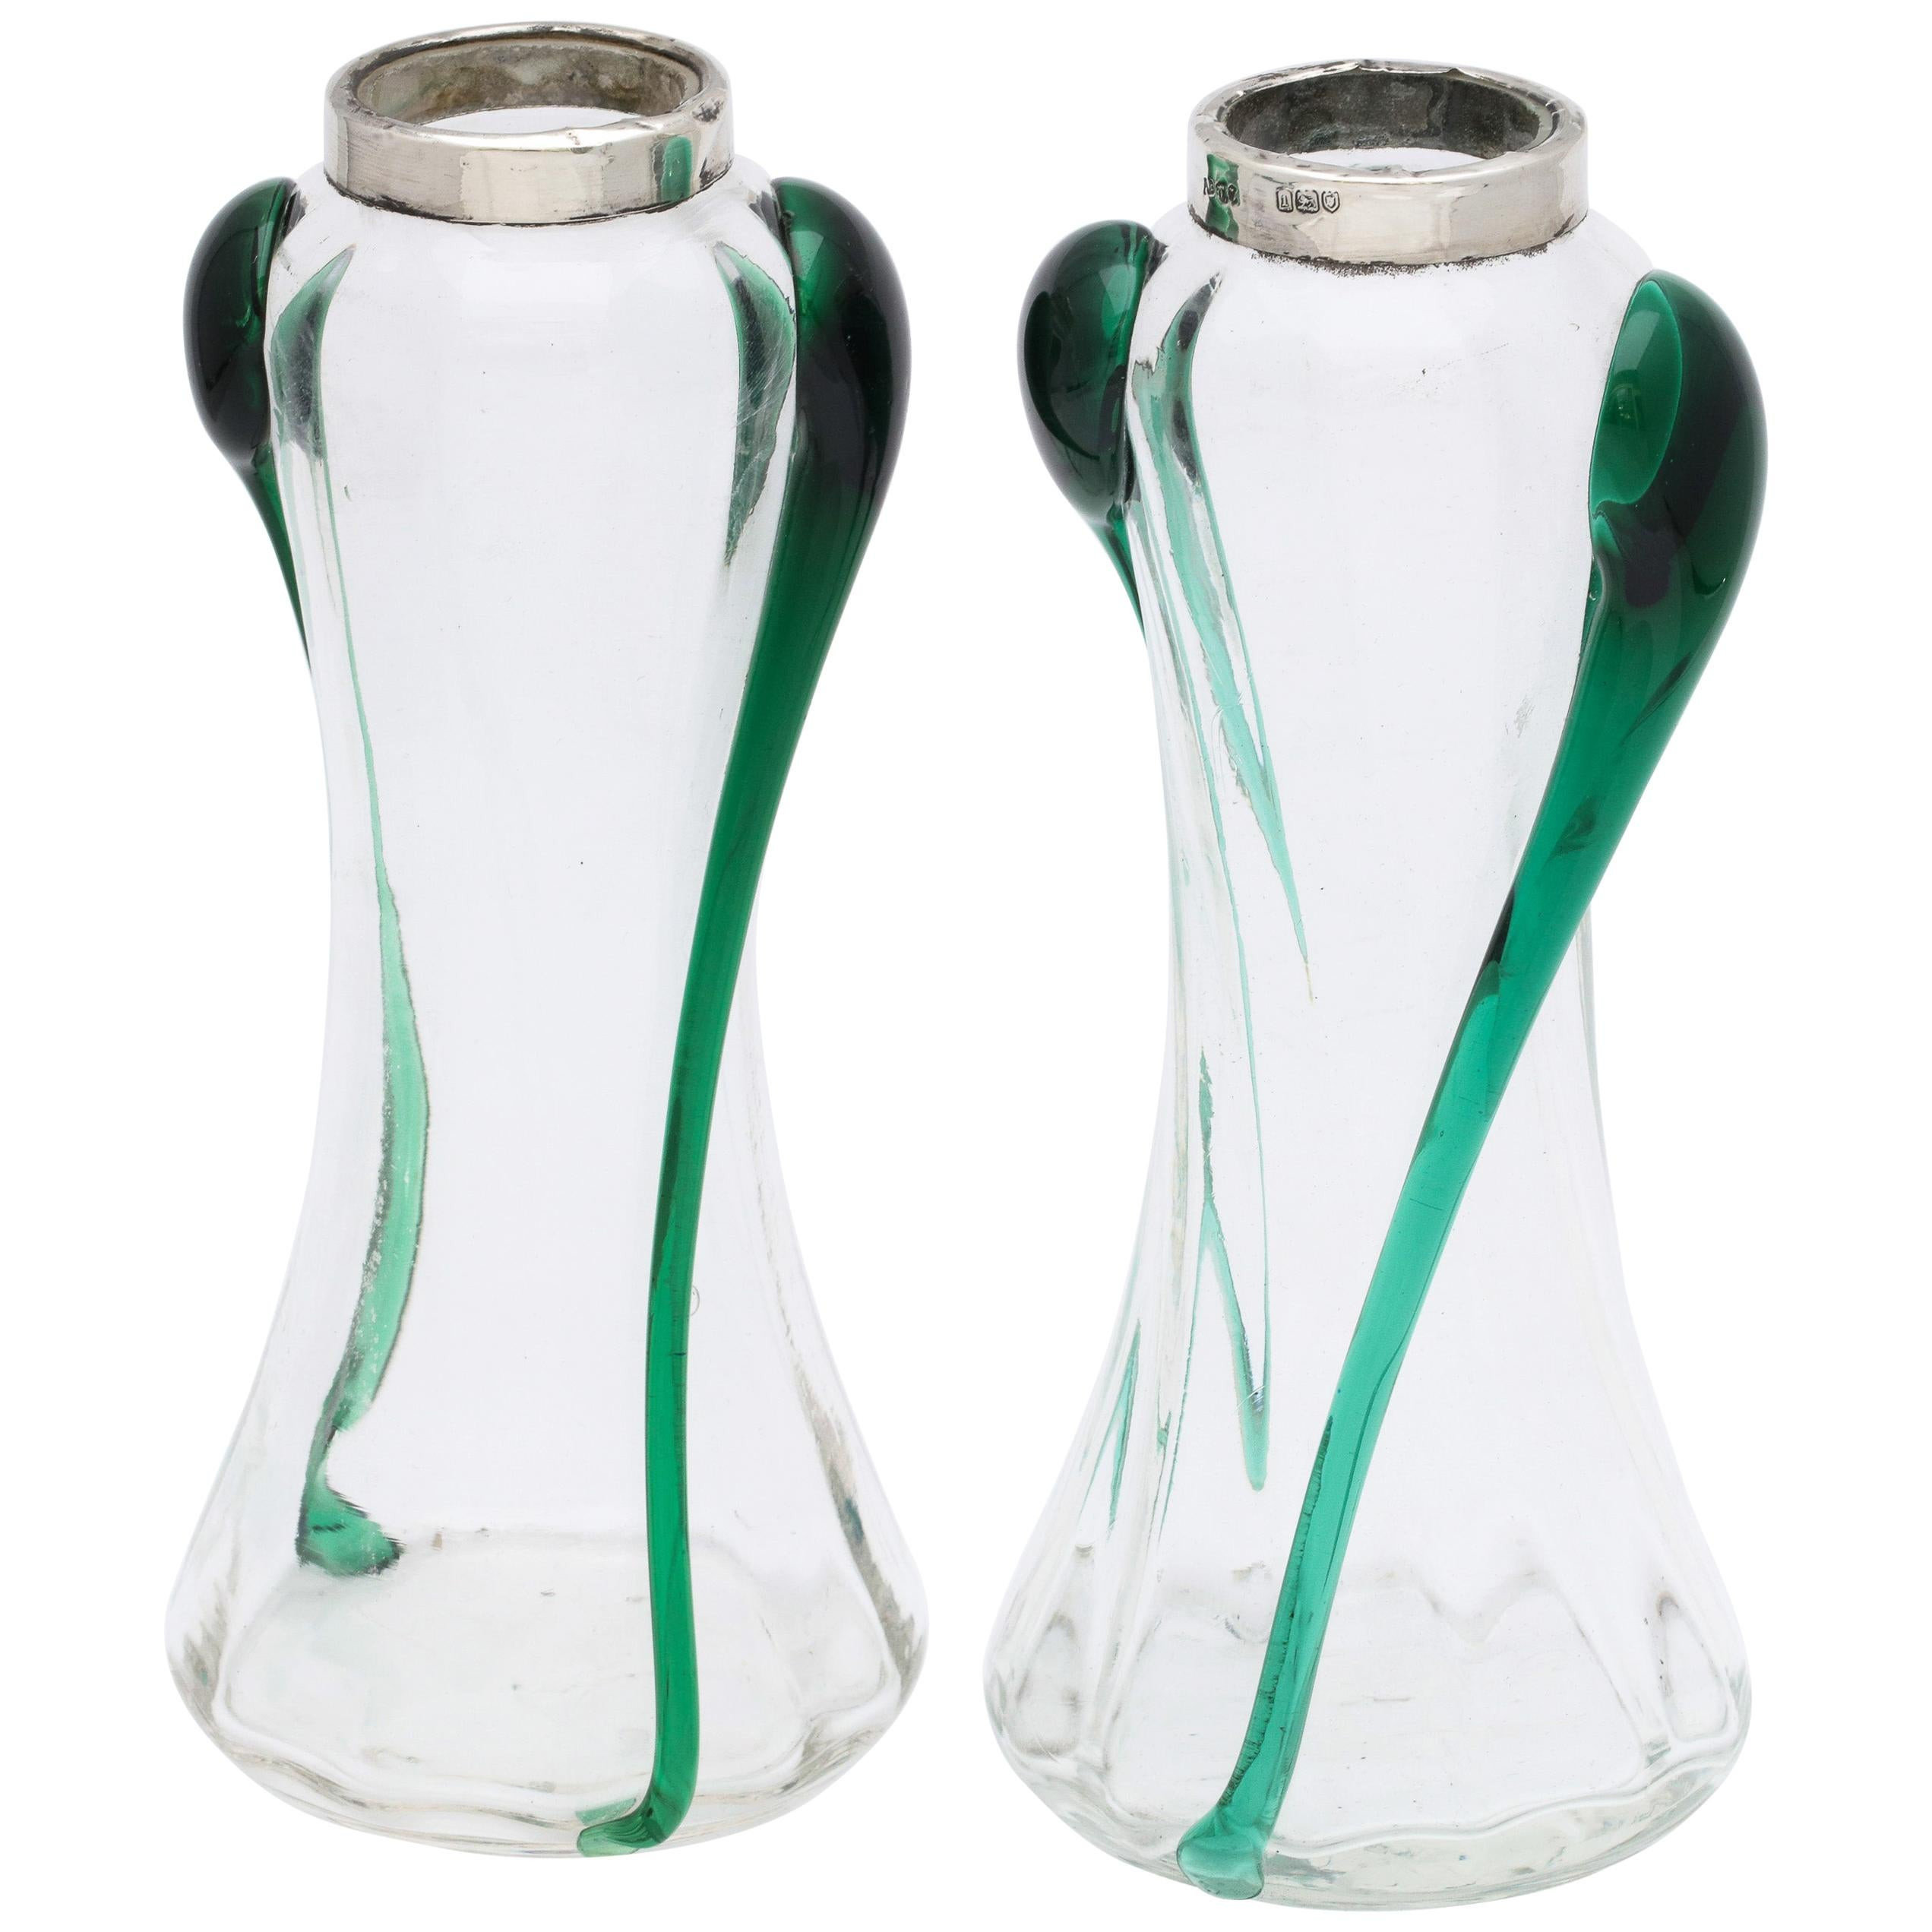 Art Nouveau Sterling Silver-Mounted Blown Green and Clear Glass Bud Vases, Pair